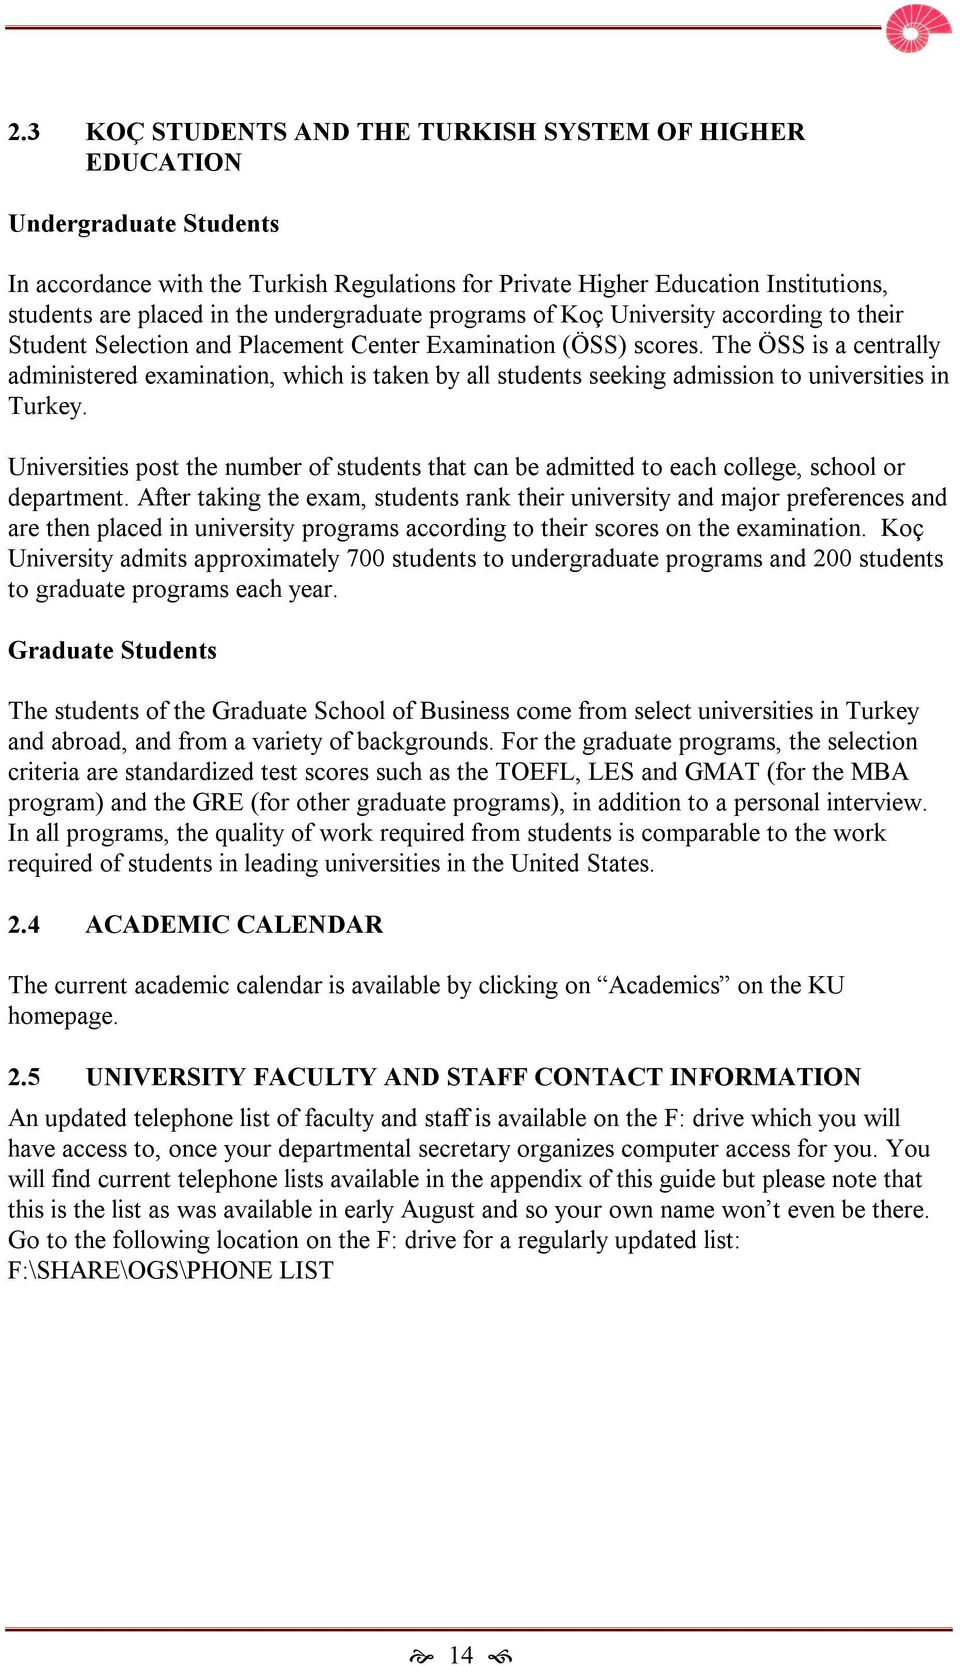 The ÖSS is a centrally administered examination, which is taken by all students seeking admission to universities in Turkey.